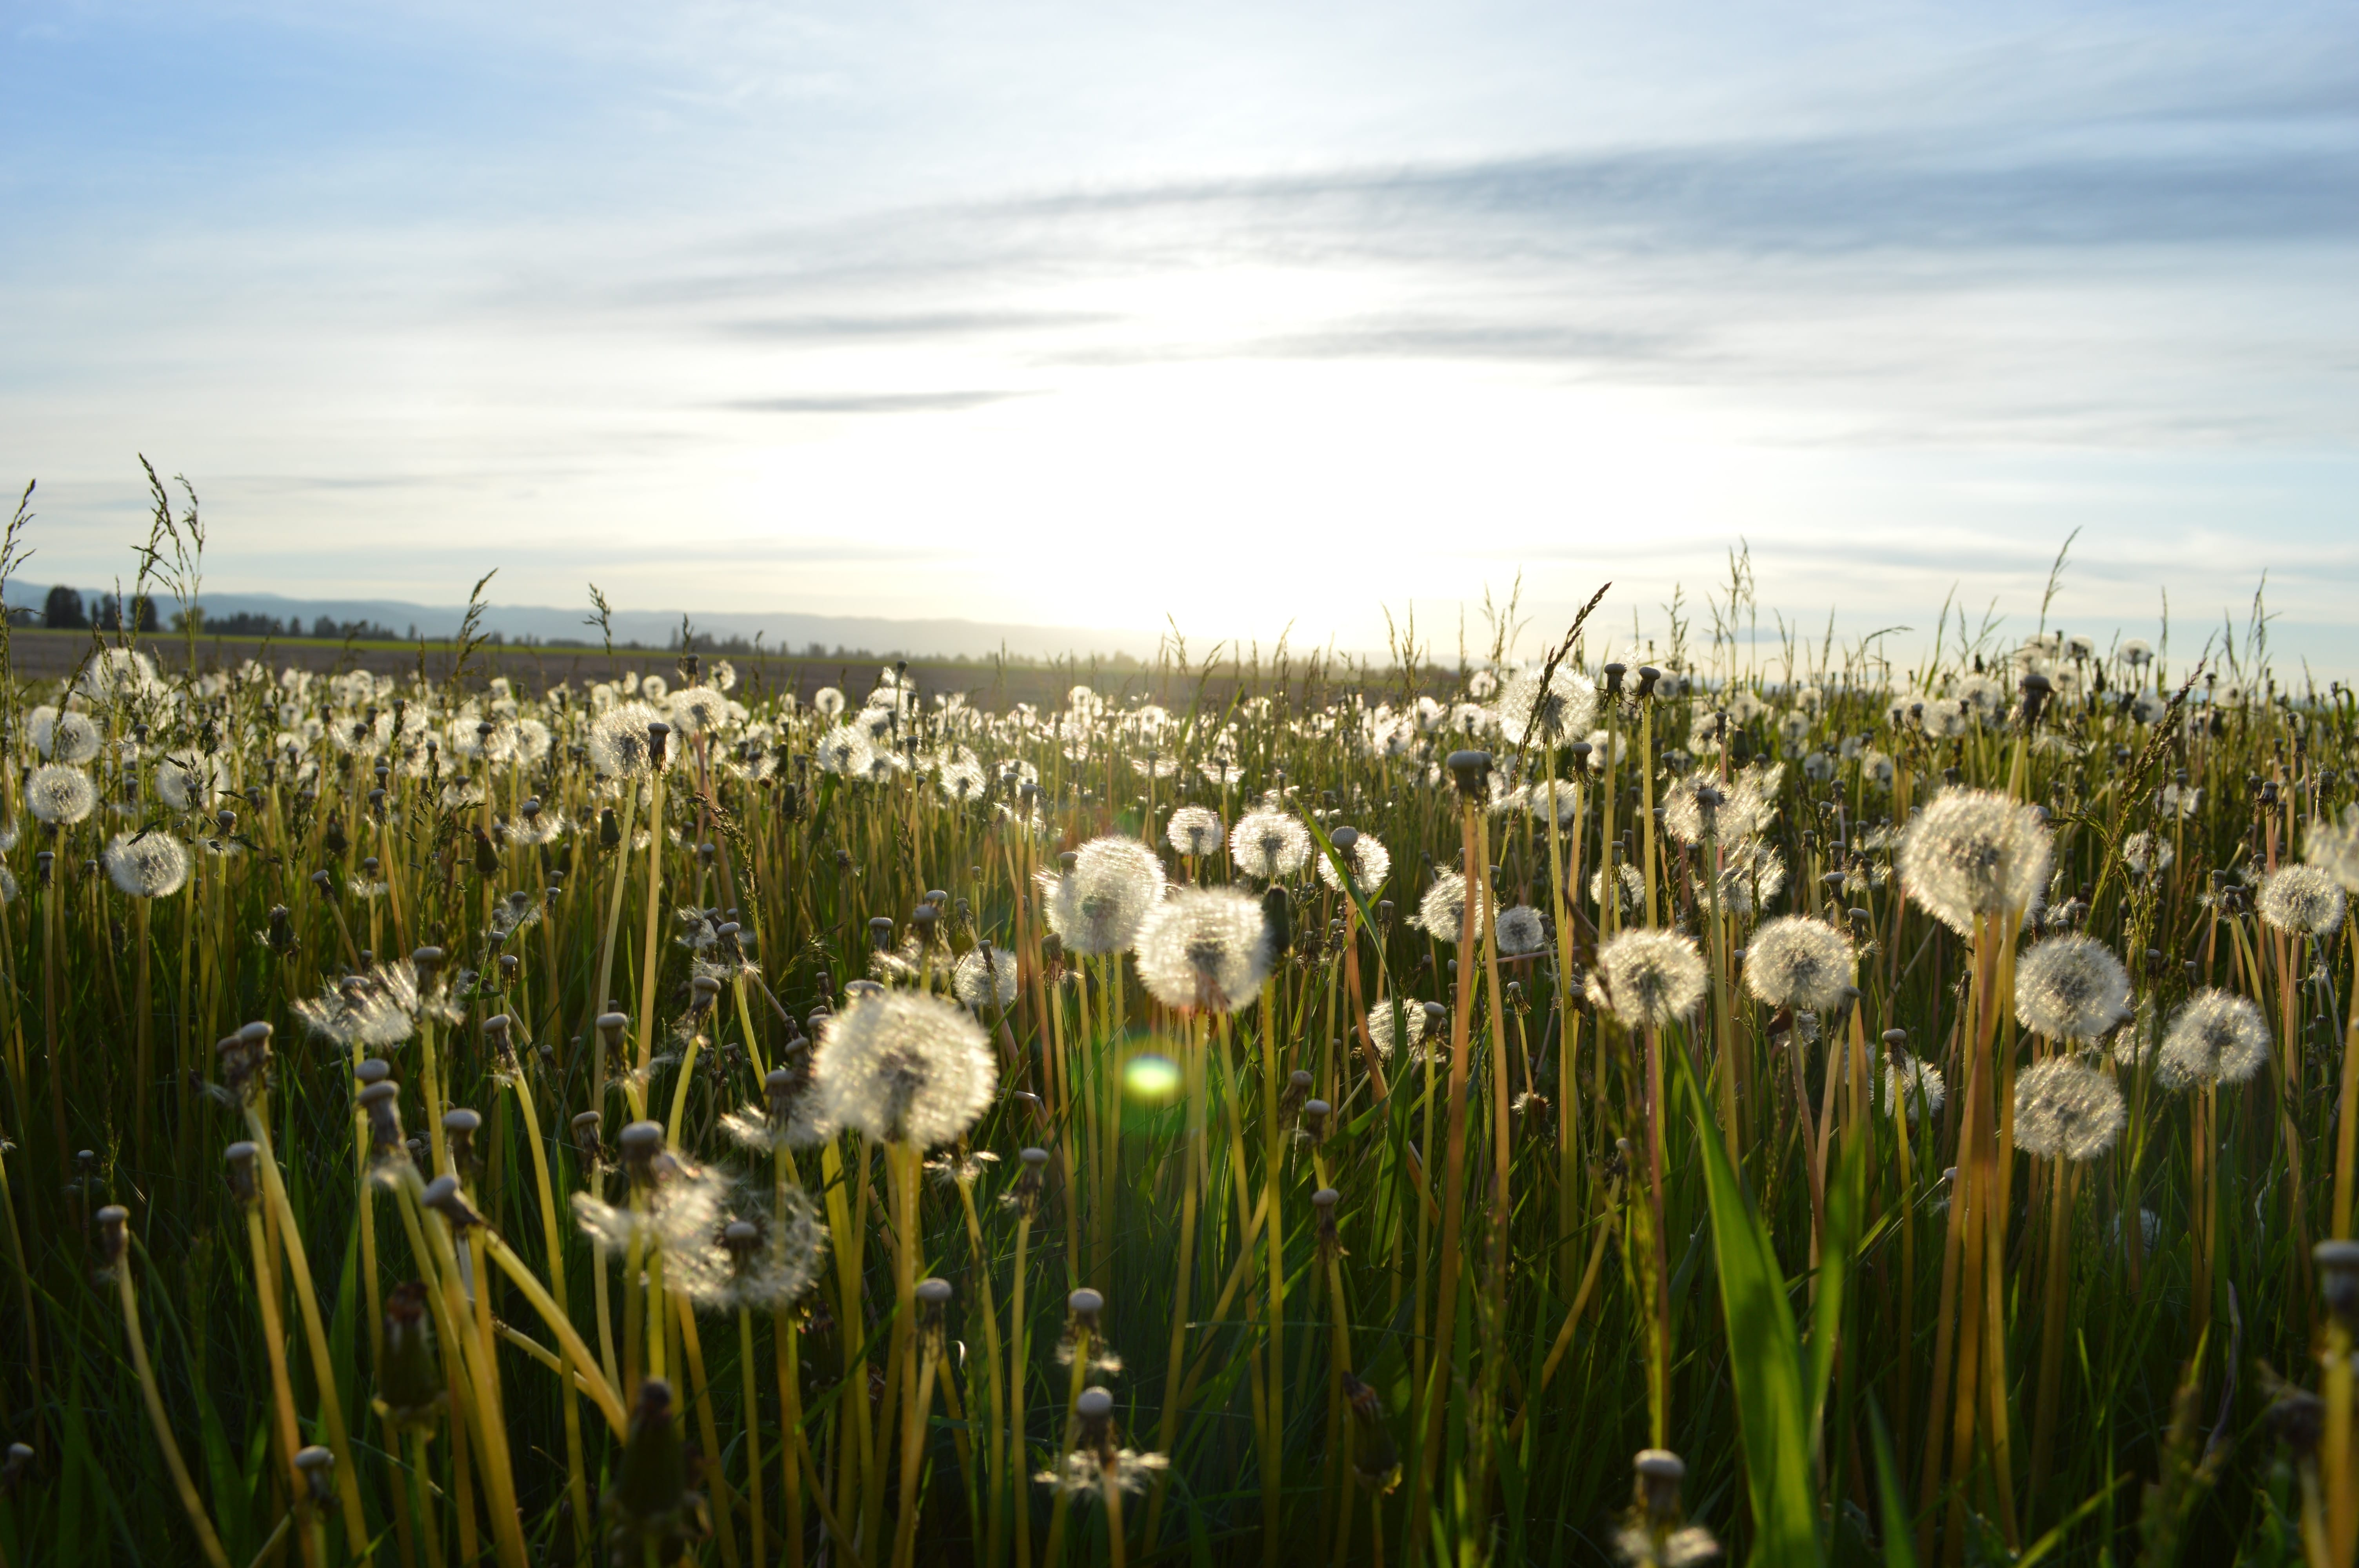 Field of dandelions gone to seed; image by Jason Long, via Unsplash.com.